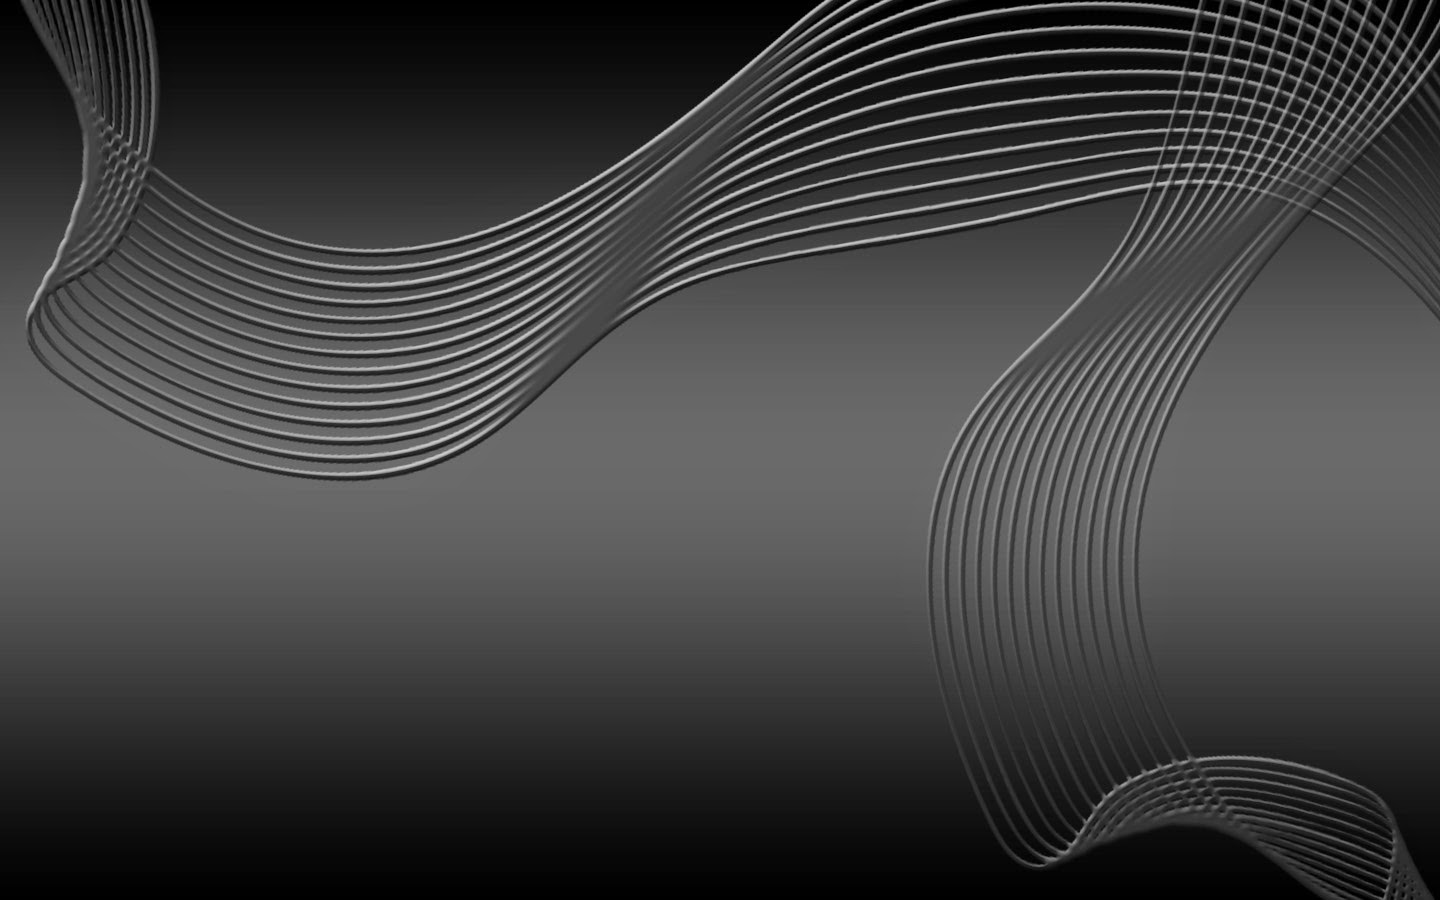 Line Texture Psd : Black and grey swirl line texture background for website